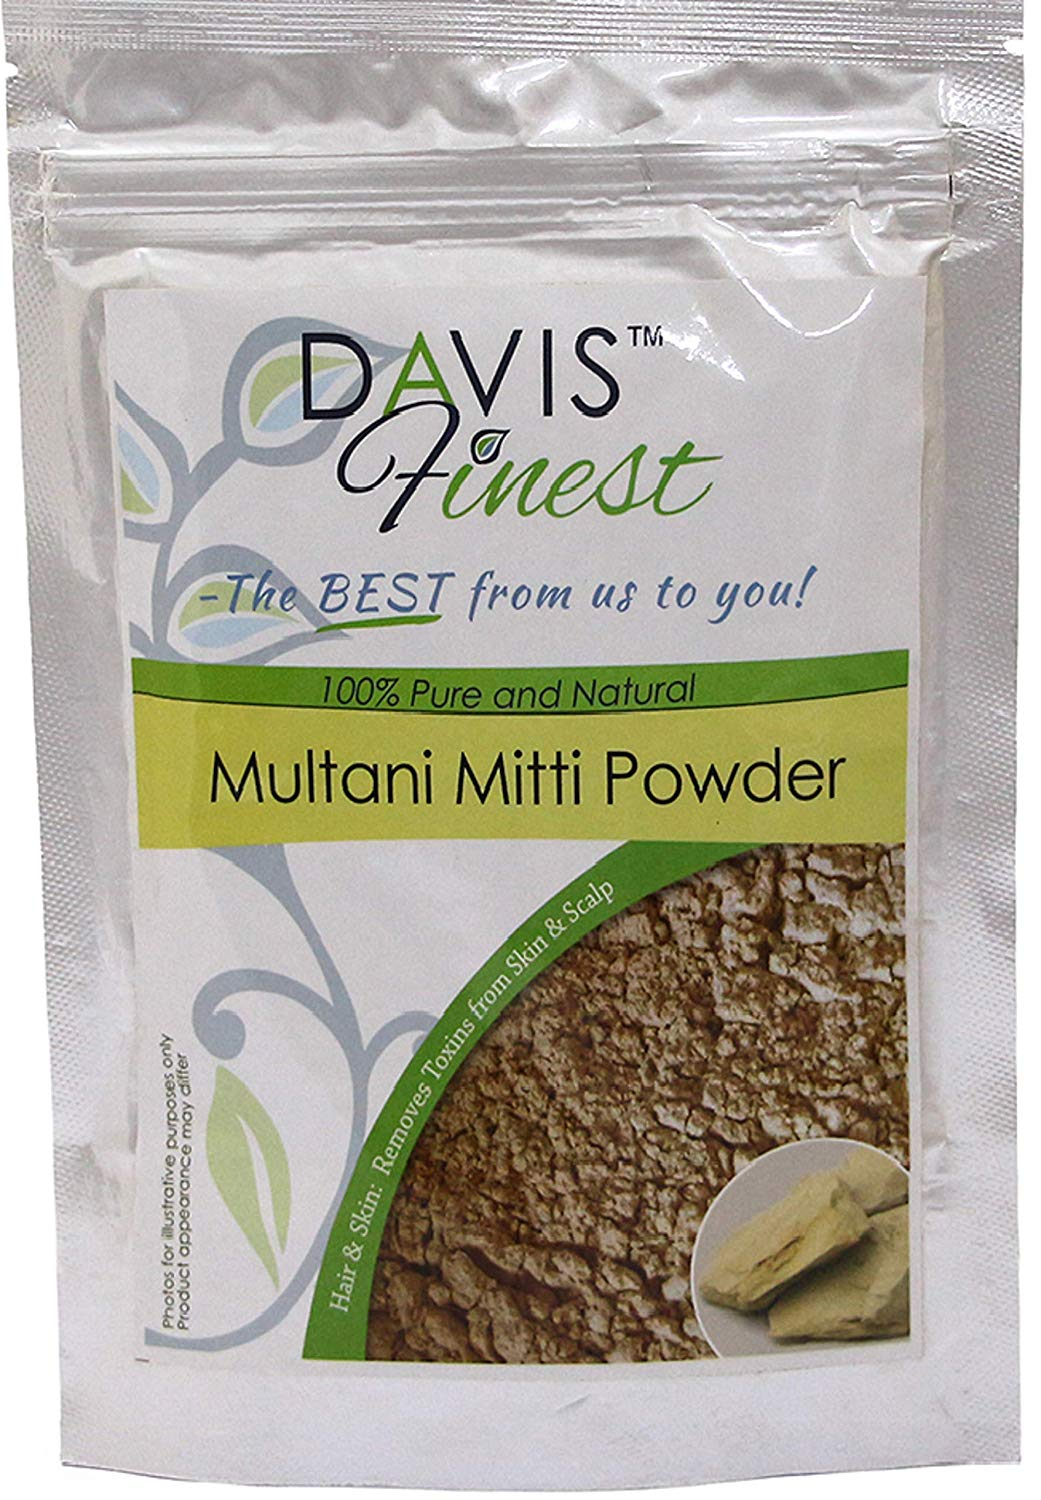 Skin Face Pack 100gm High Resilience Realistic Multani Mitti Powder fuller's Earth